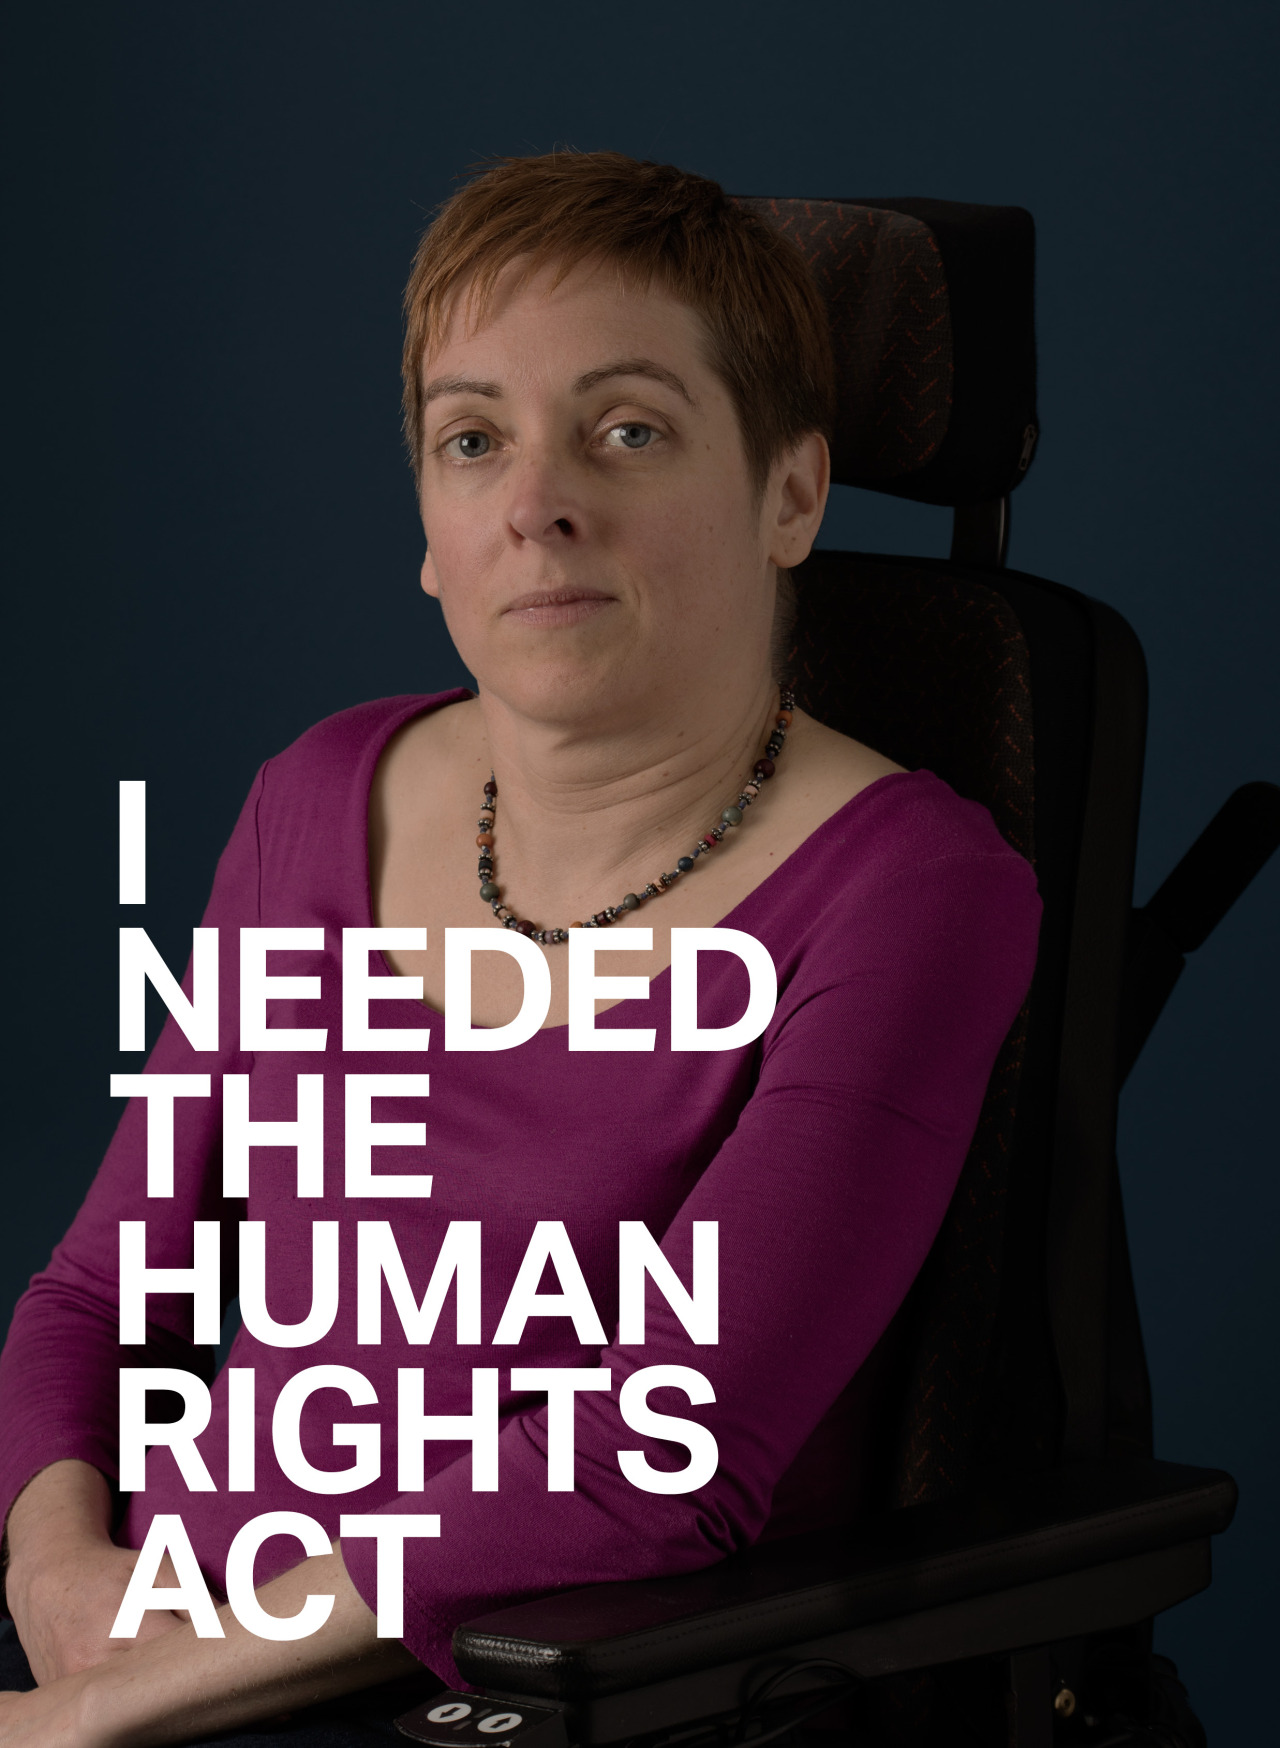 Jan SuttonJanwas left in bed all day by her carers. The Human RightsAct helped her get her dignity back.